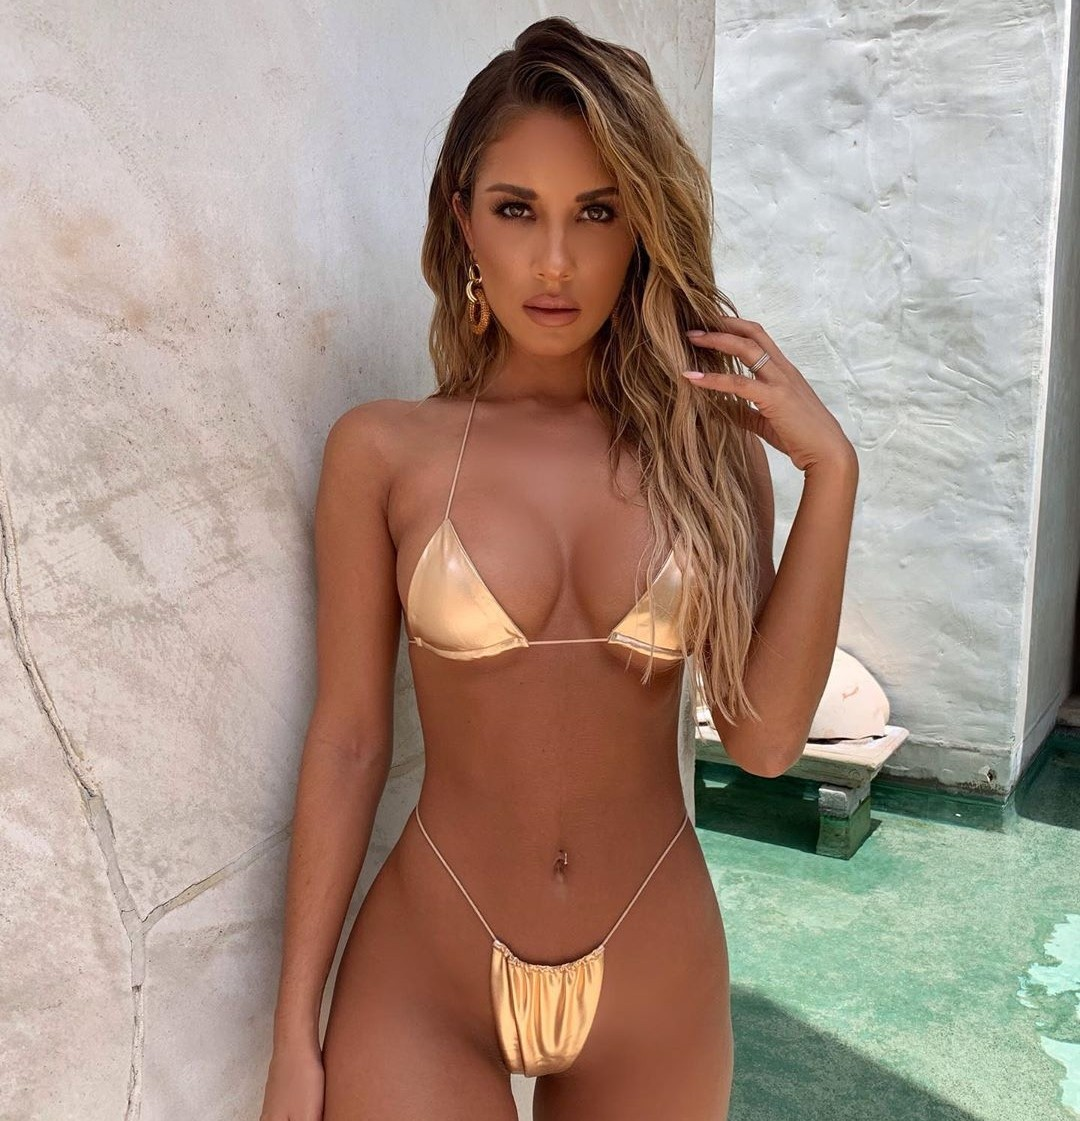 Sierra Skye Hot Golden Bikini Ppiics - Sierra Skye Hot Golden Bikini Ppiics